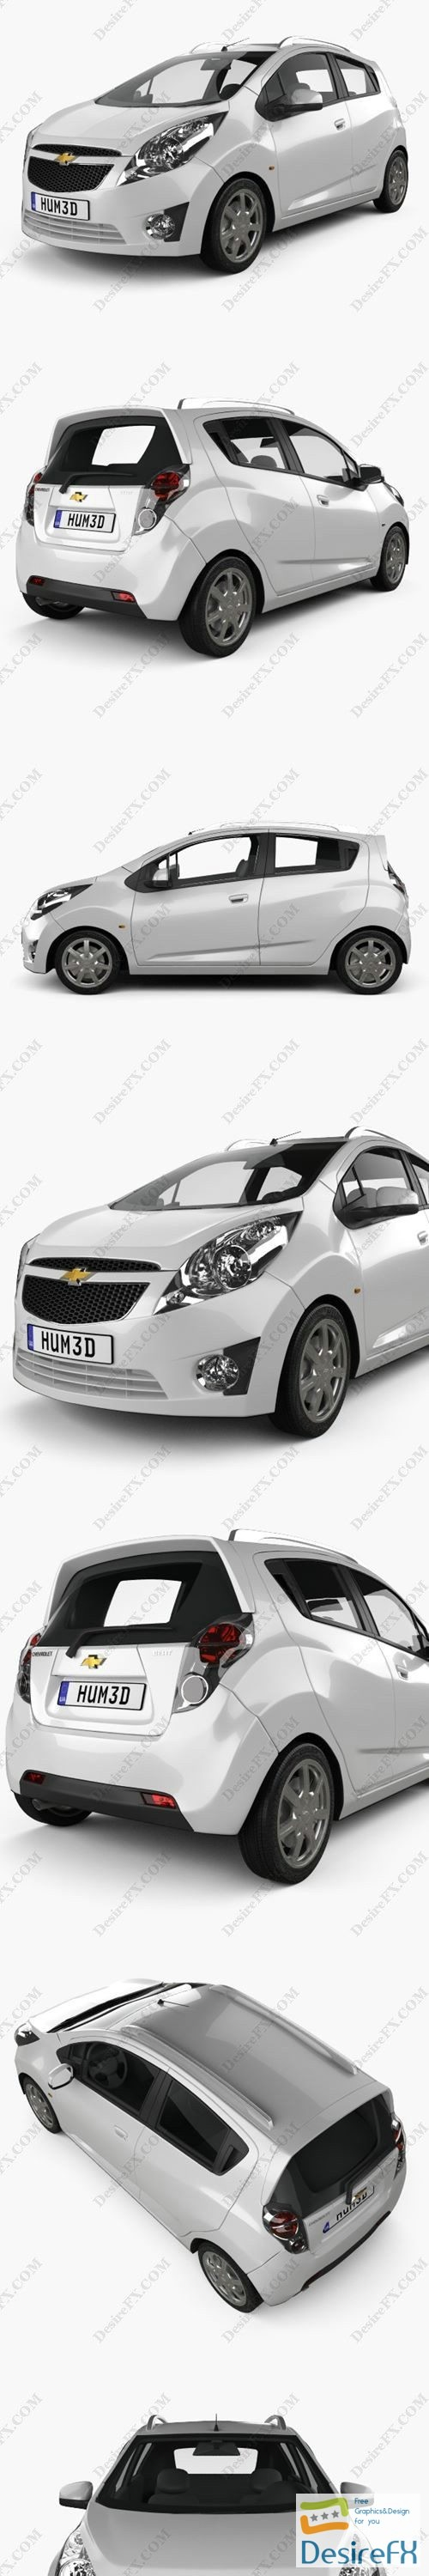 3d-models - Chevrolet Spark (Beat) 2010 3D Model